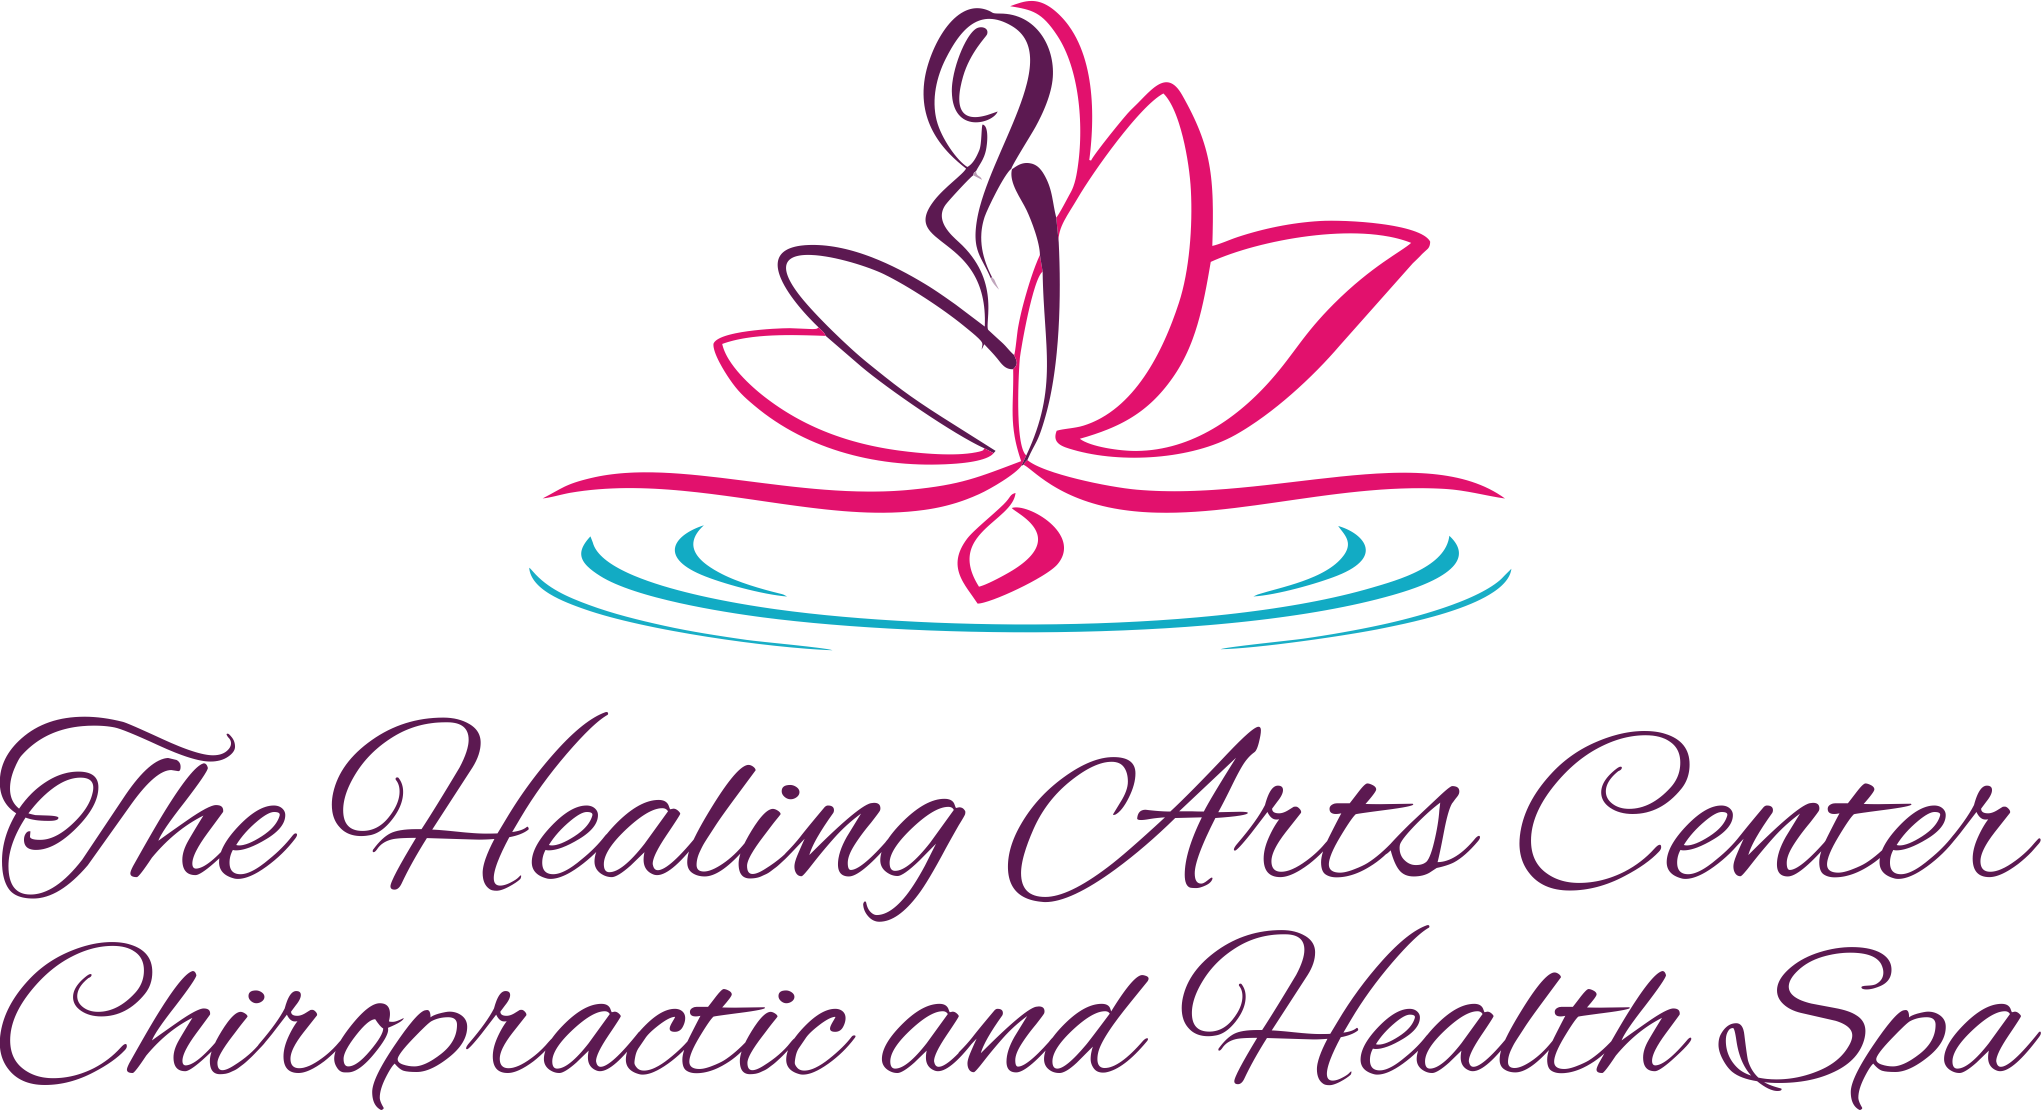 The Healing Arts Center Chiropractic and Health Spa